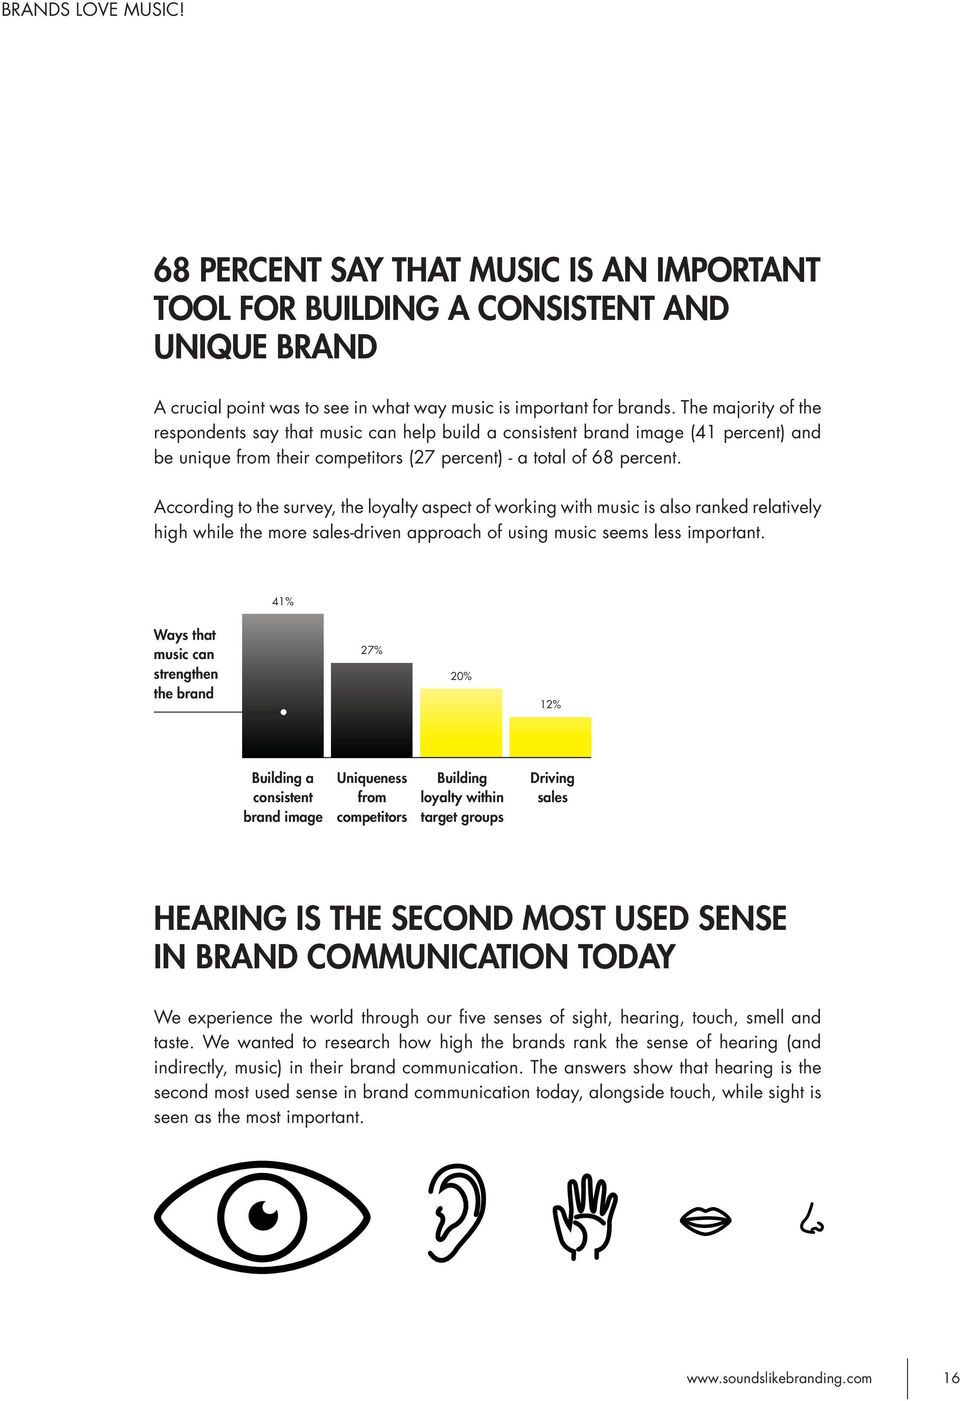 According to the survey, the loyalty aspect of working with music is also ranked relatively high while the more sales-driven approach of using music seems less important.